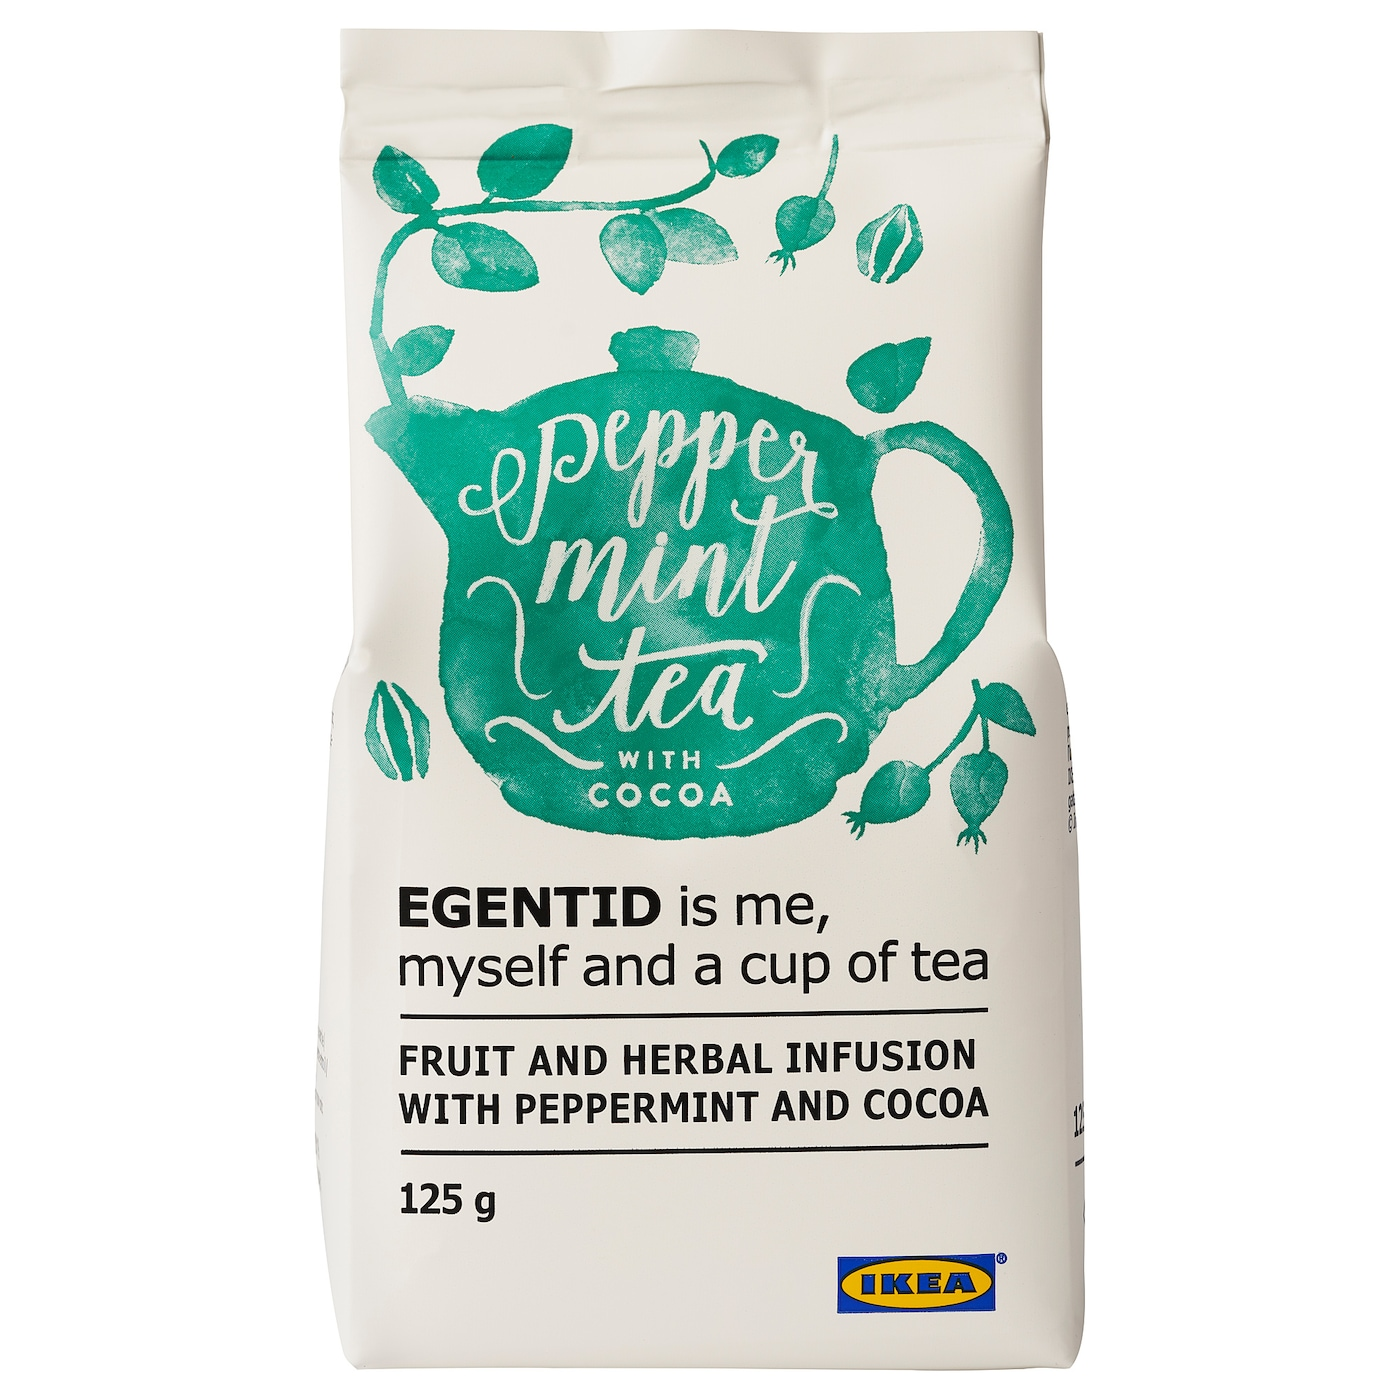 IKEA EGENTID fruit and herbal infusion Restore inner peace with the soothing flavours of tea.